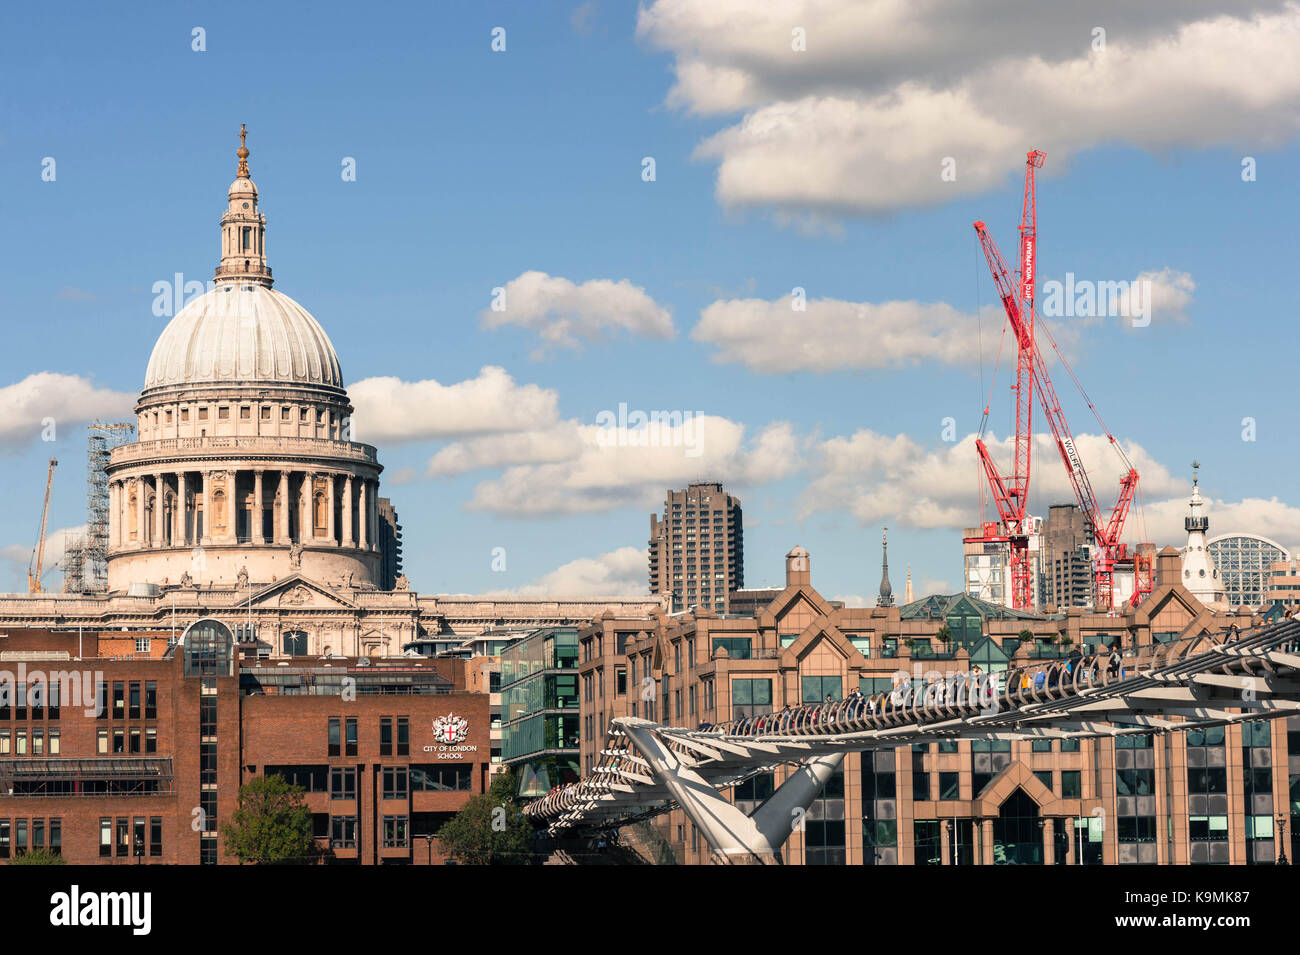 St Pauls Cathedral and the Millennium Footbridge Crossing the River Thames With the City of Londons Square Mile - Stock Image